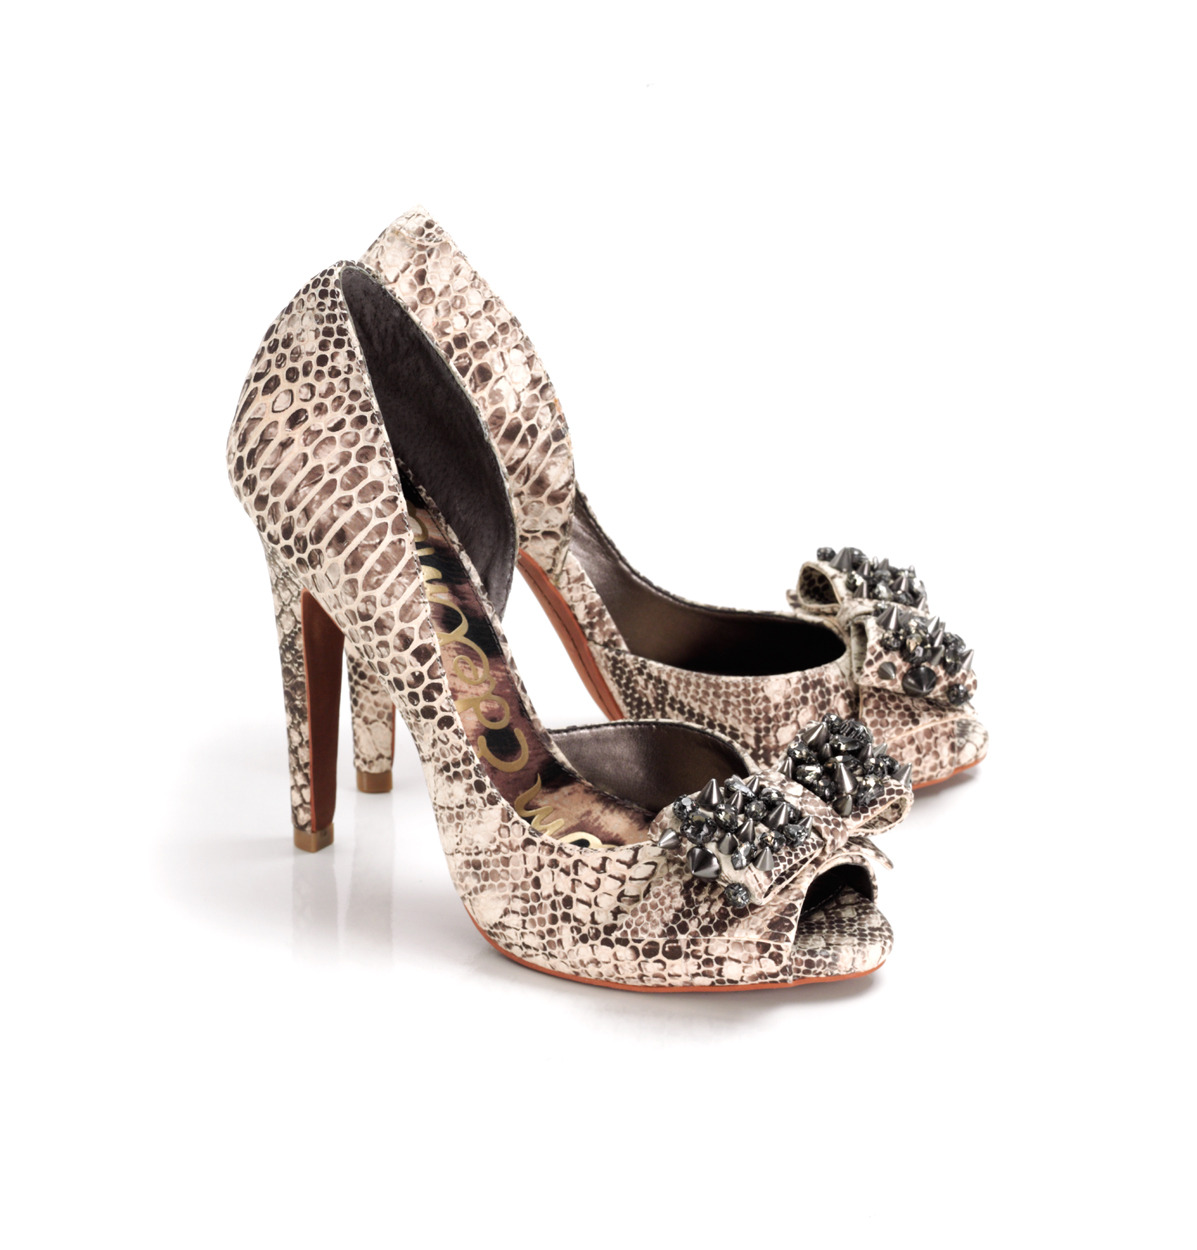 Lorna Animal Skin Studded Shoes - predominant colour: ivory; material: leather; heel height: high; embellishment: animal print, crystals, studs; heel: stiletto; toe: open toe/peeptoe; style: courts; pattern: animal print